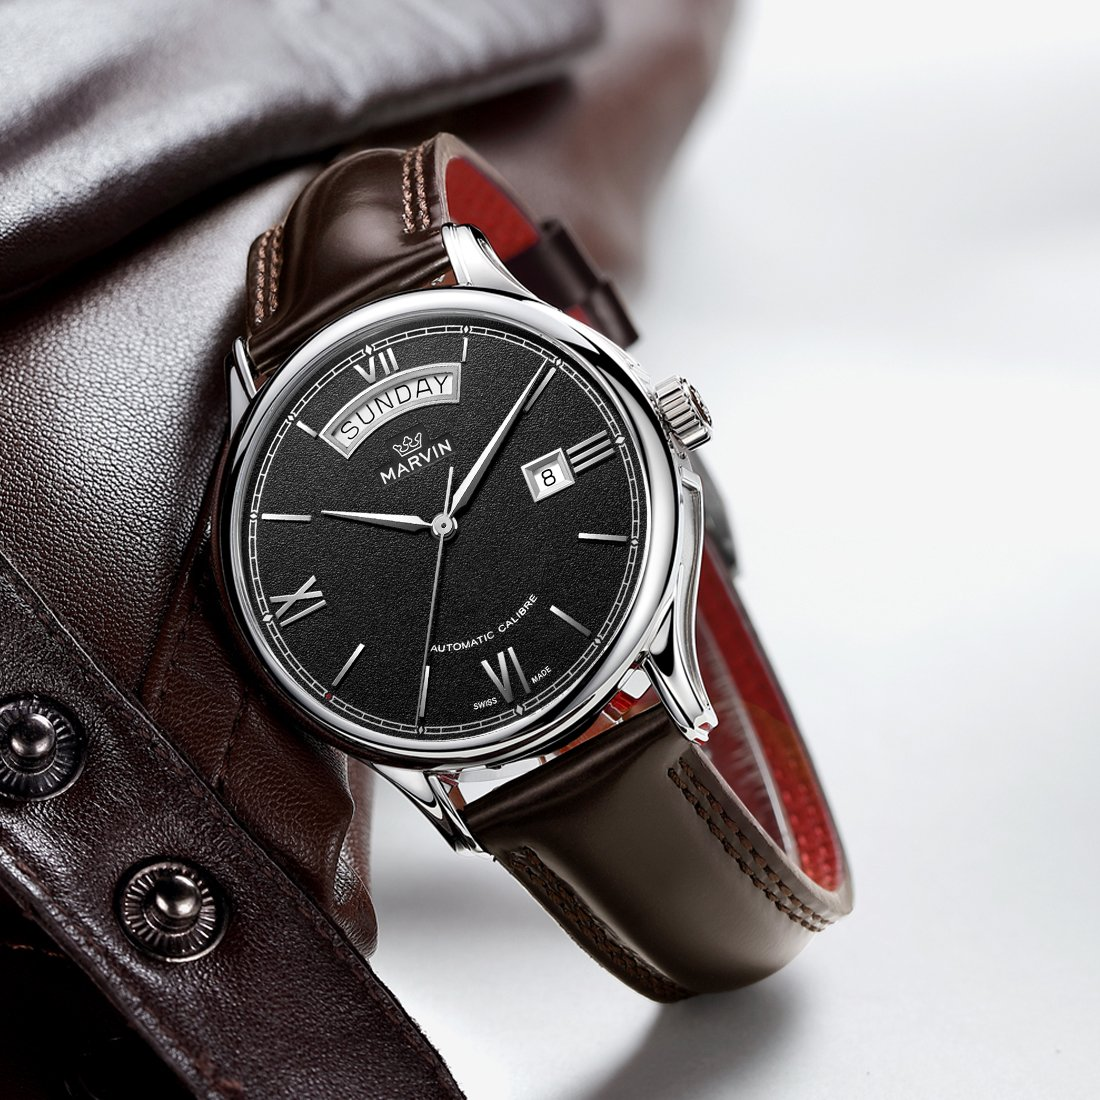 Amazon.com: Marvin Swiss Made Mens Automatic Movement Casual Watches Black Dial Big Date Roman Numeral Analog Display Waterproof: Watches